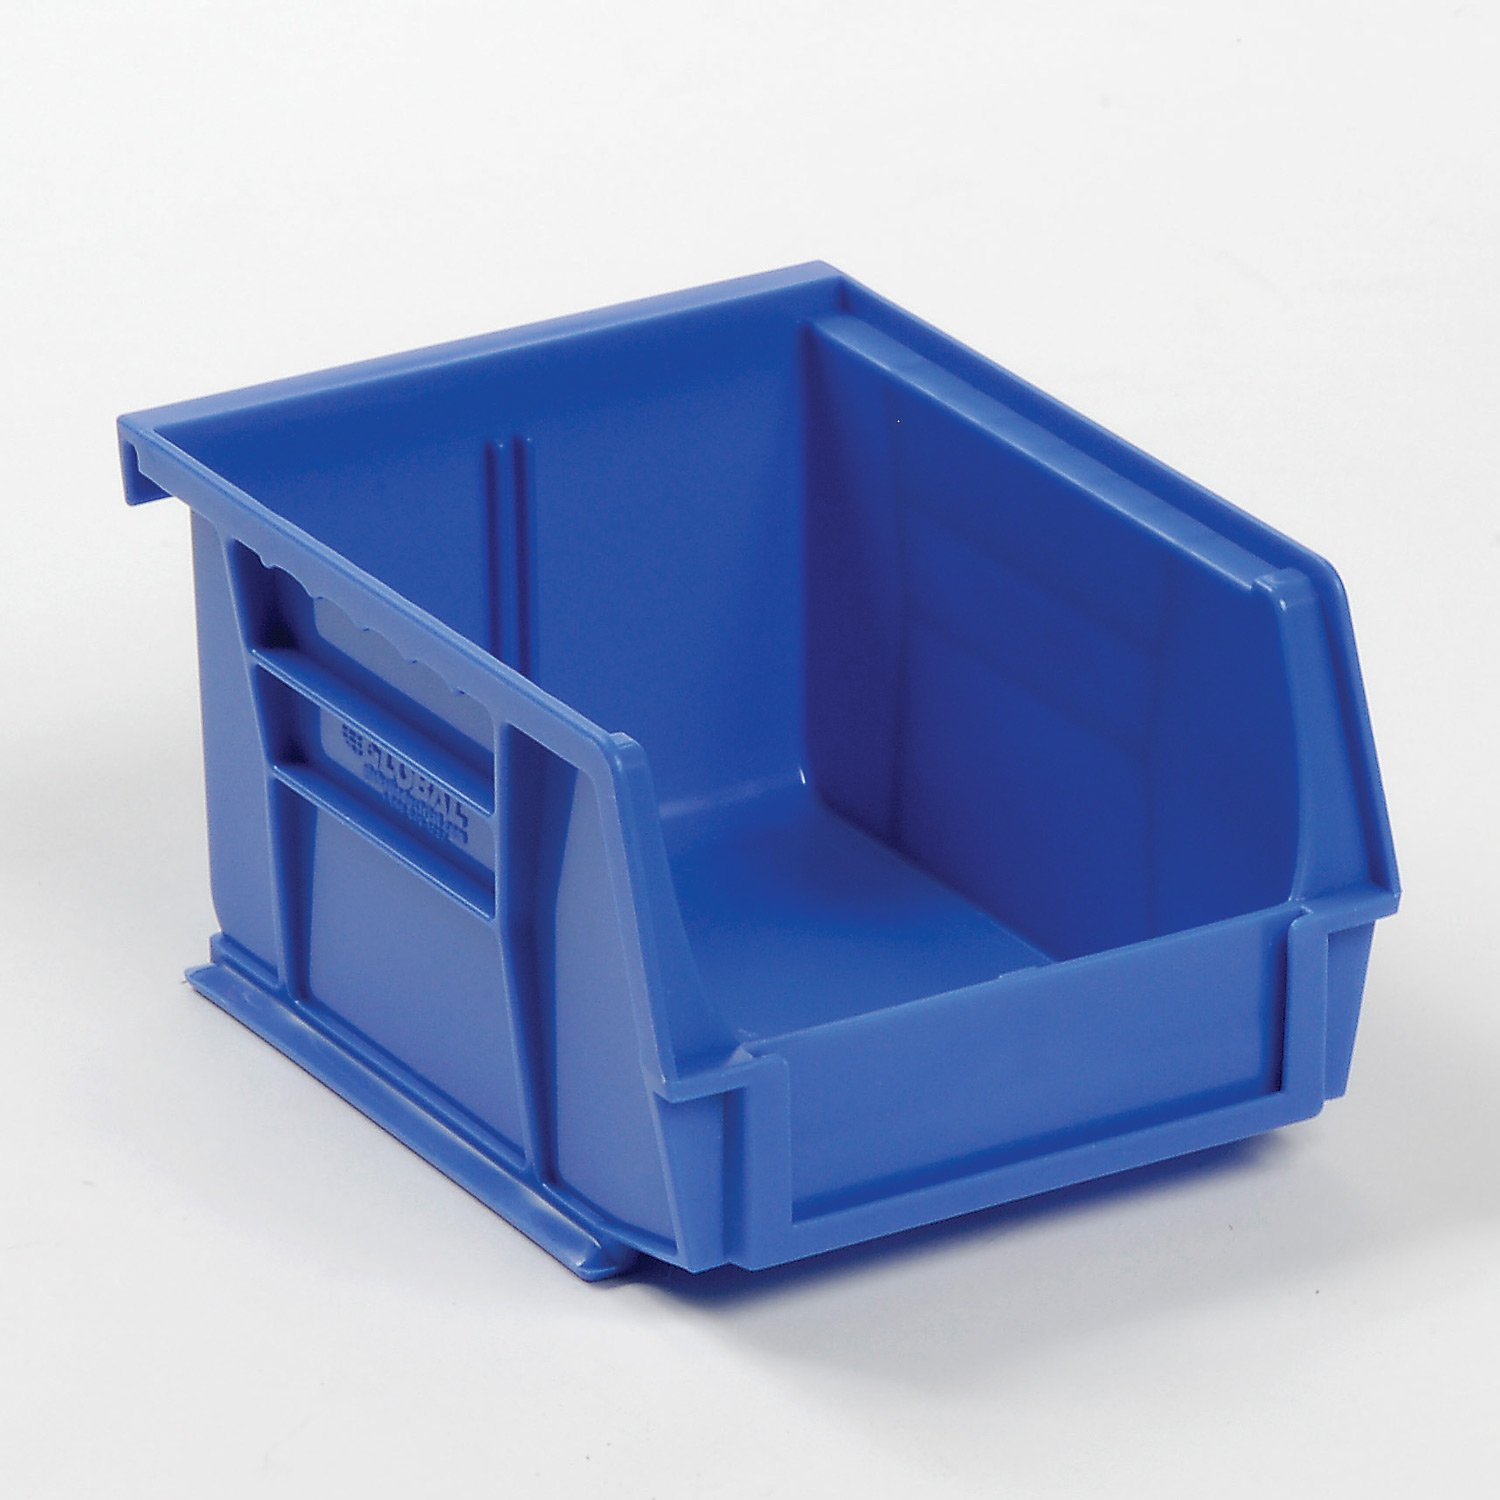 Plastic Stacking And Hanging Bin - Small Parts Storage - 4-1/8 x 5-3/8 x 3, Blue - Lot of 24